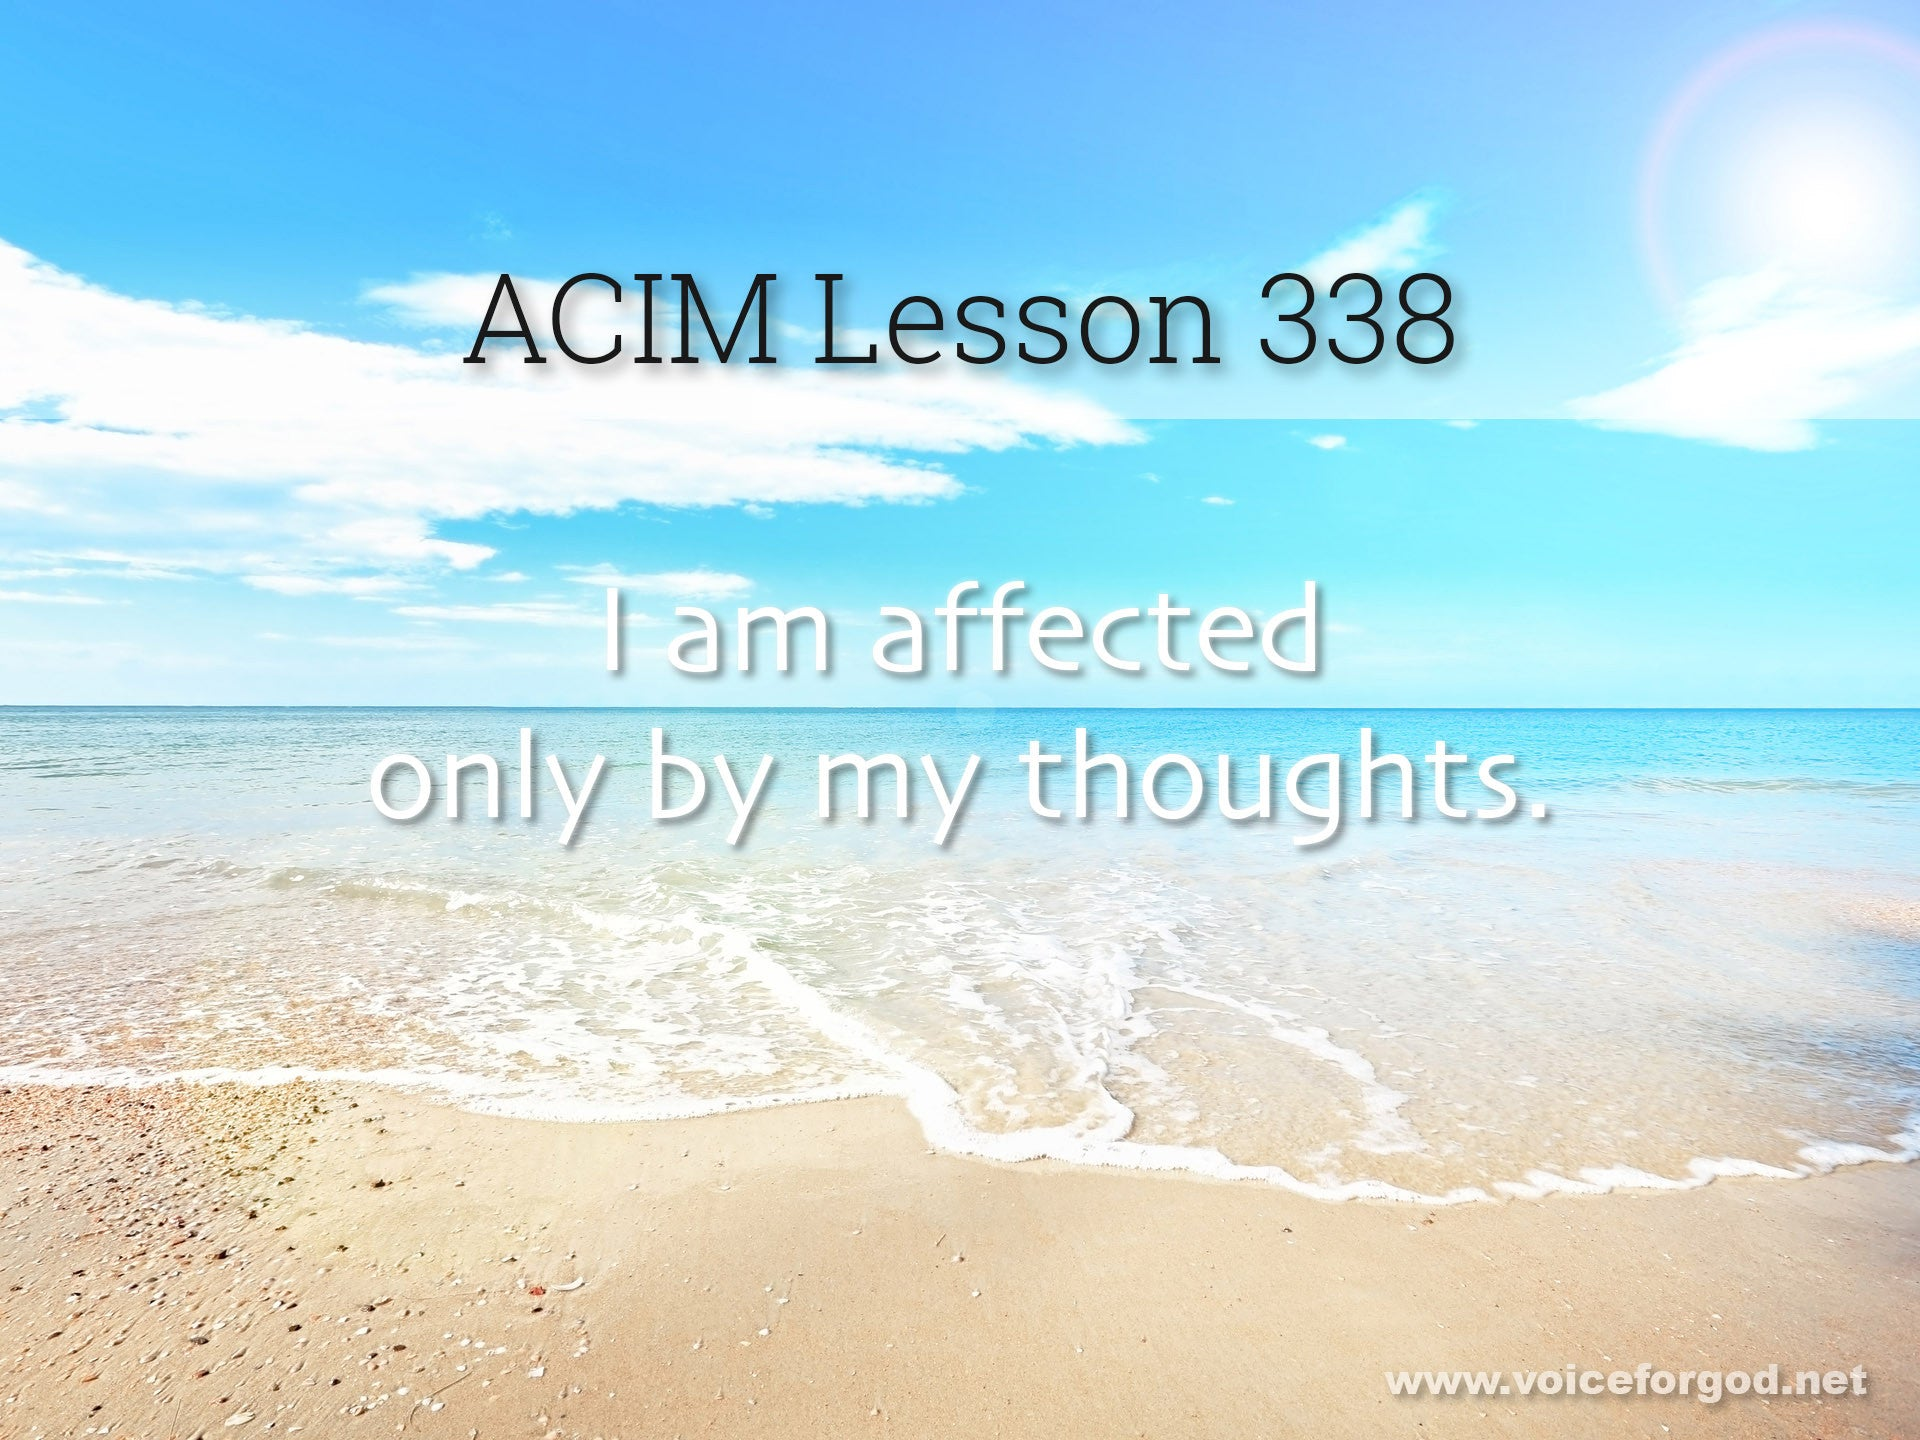 ACIM Lesson 338 - A Course in Miracles Workbook Lesson 338